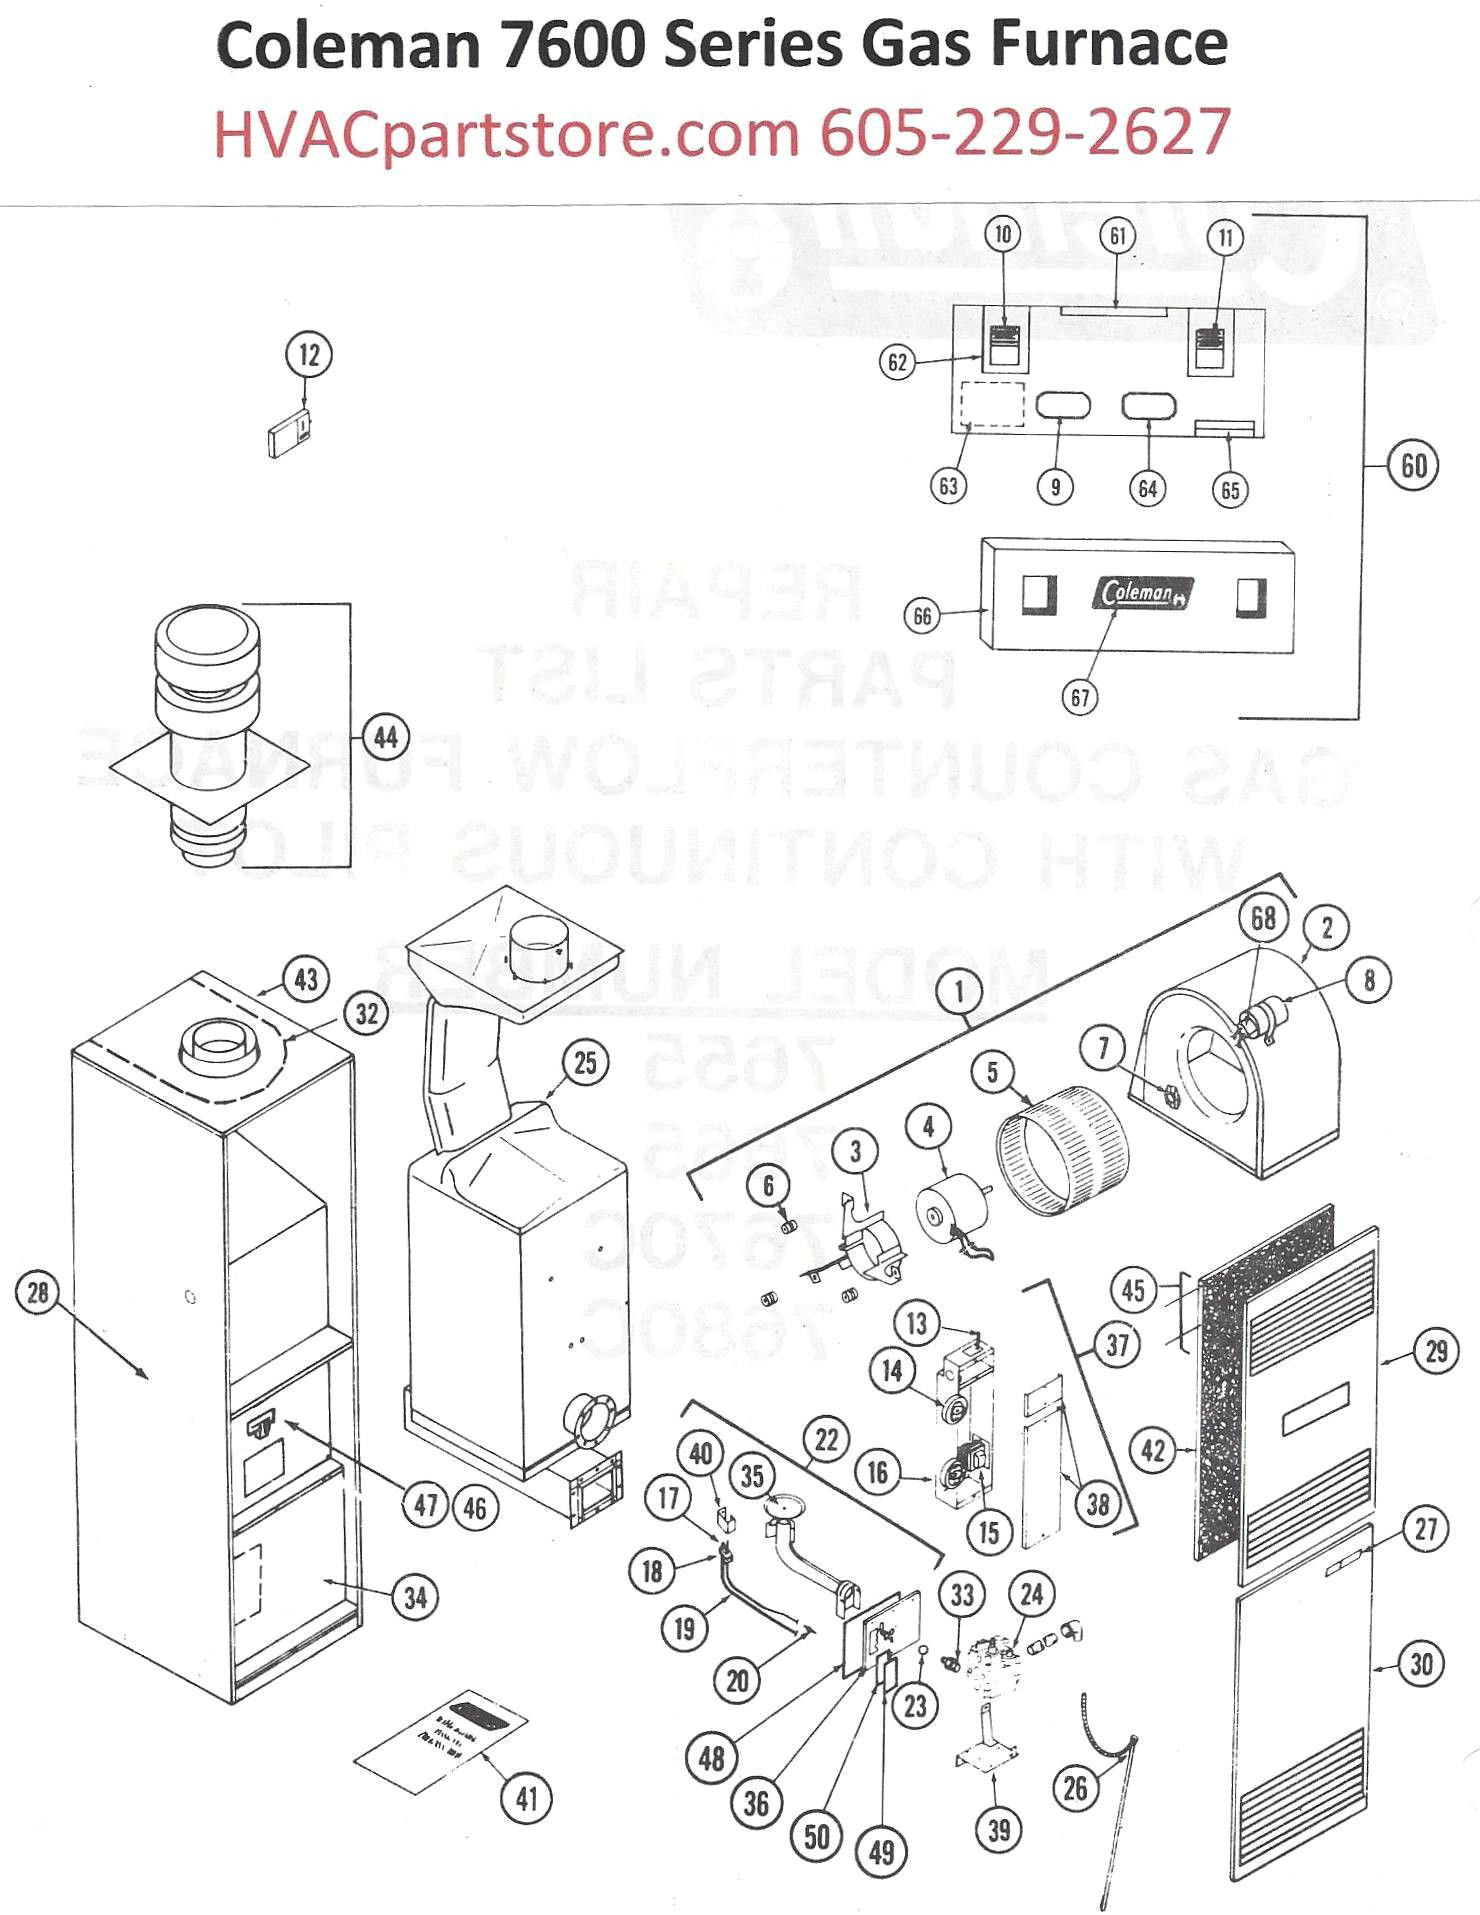 miller foot pedal wiring diagram Download-York Gas Furnace Wiring Diagram Fresh York Gas Furnace Wiring Diagram Readingrat Net and Miller Wiring 8-e